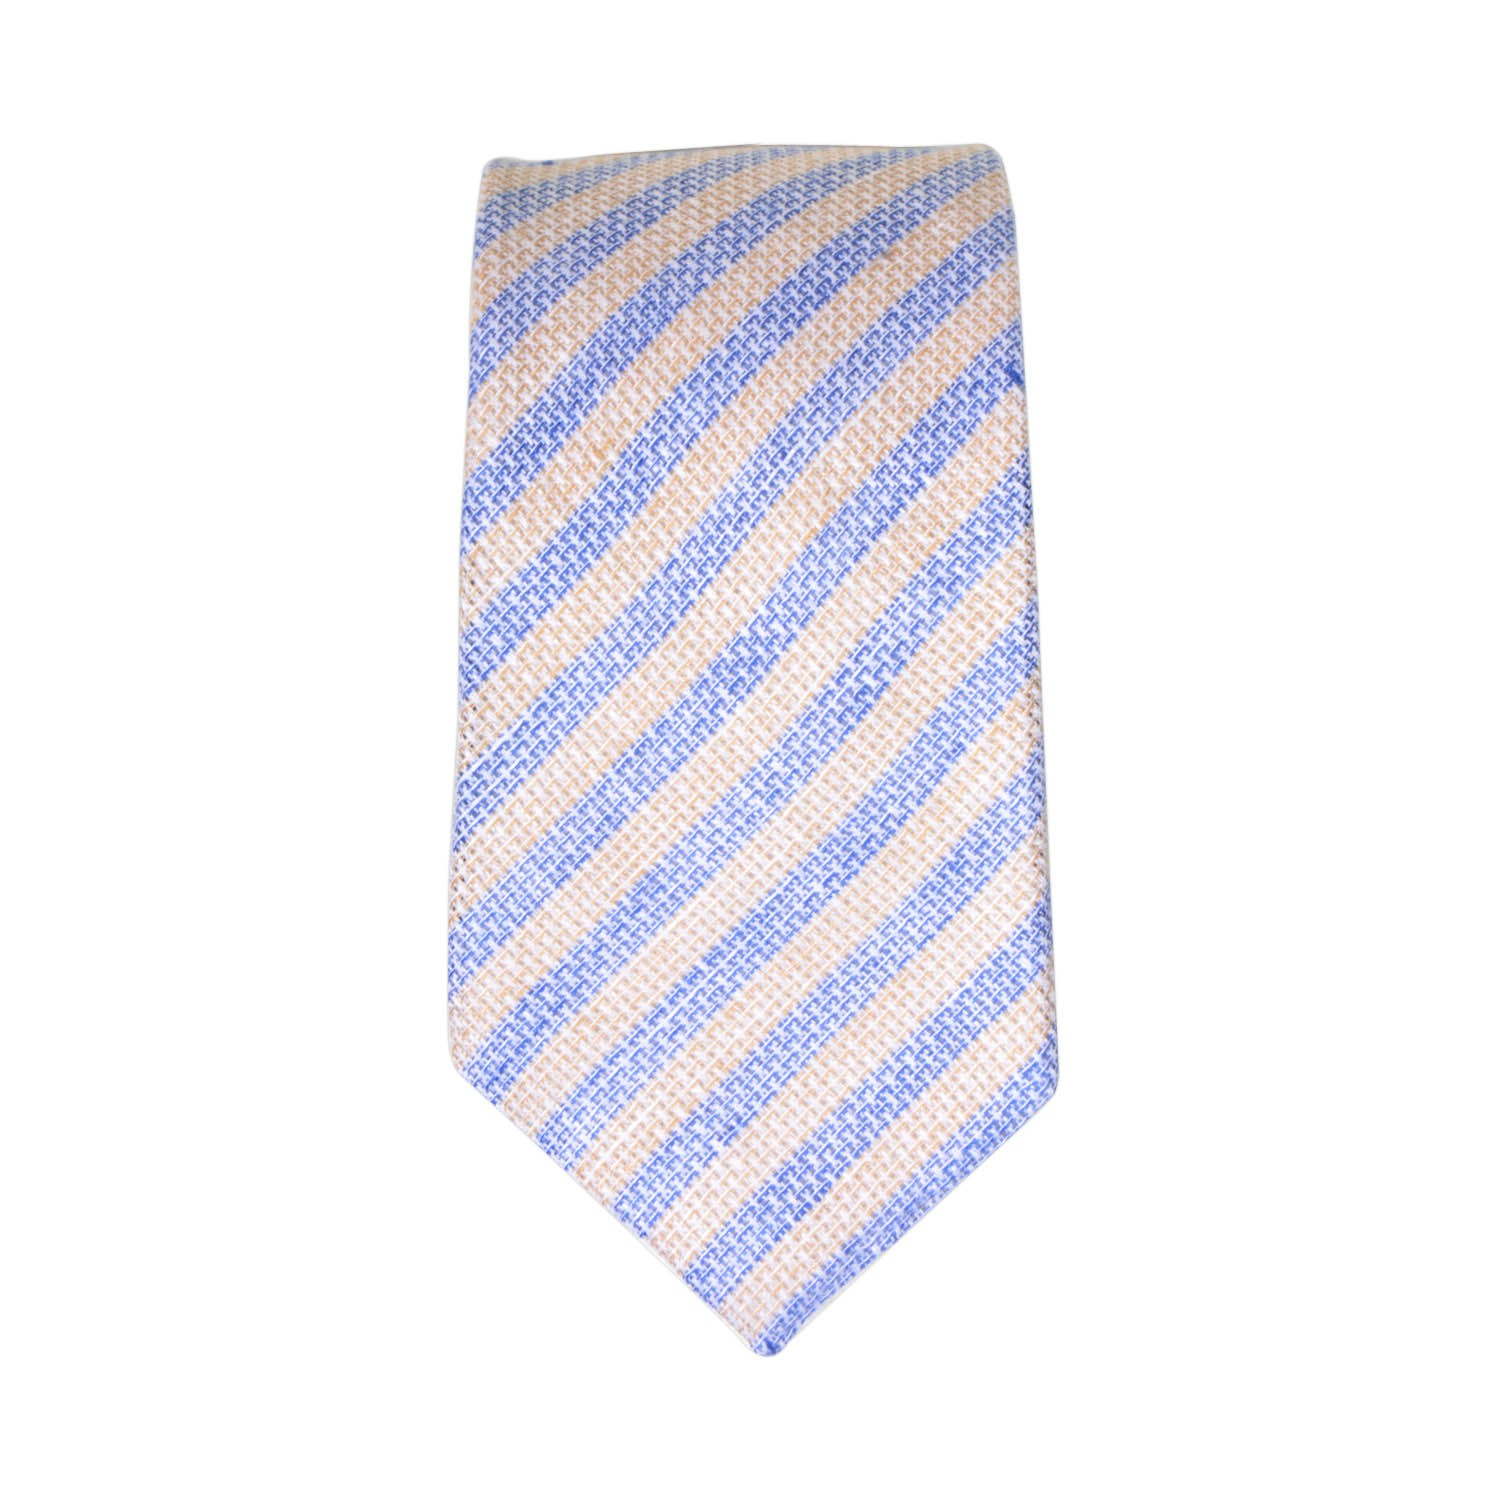 Blue and Brown Stripes 100% Pure Linen Necktie